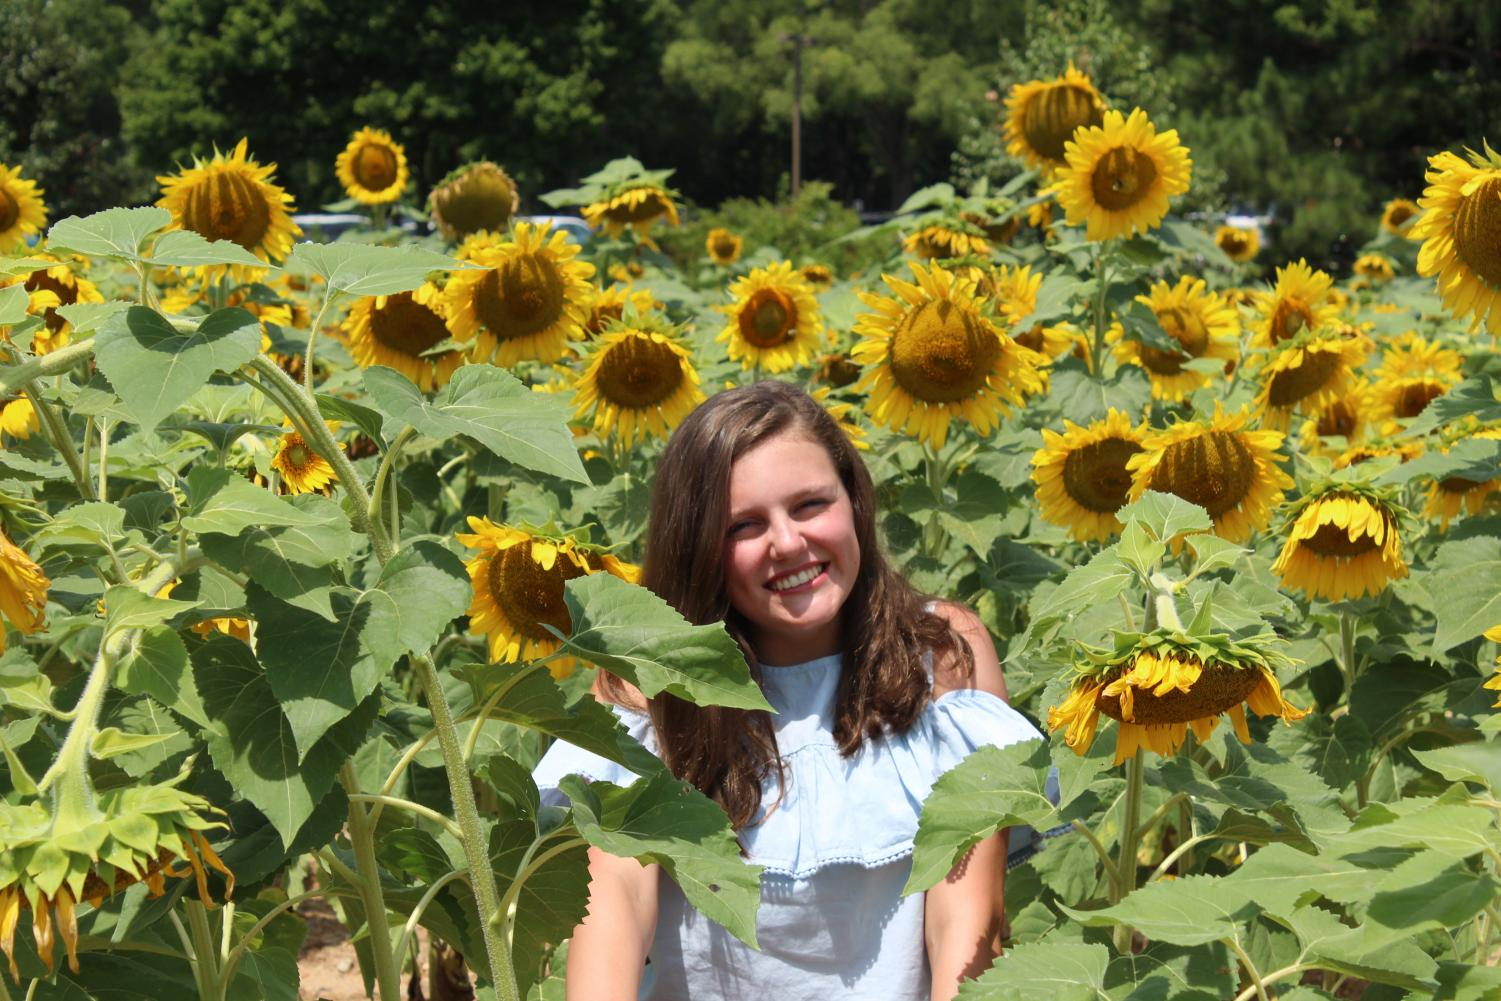 Soaking in the beauty of the sunflowers, sophomore Ashley Jean visits Dorothea Dix Park where they have sunflower fields open for many locals come and flock to. Being out in nature by hanging out at a park is just one of the many ways to get rid of summer boredom.